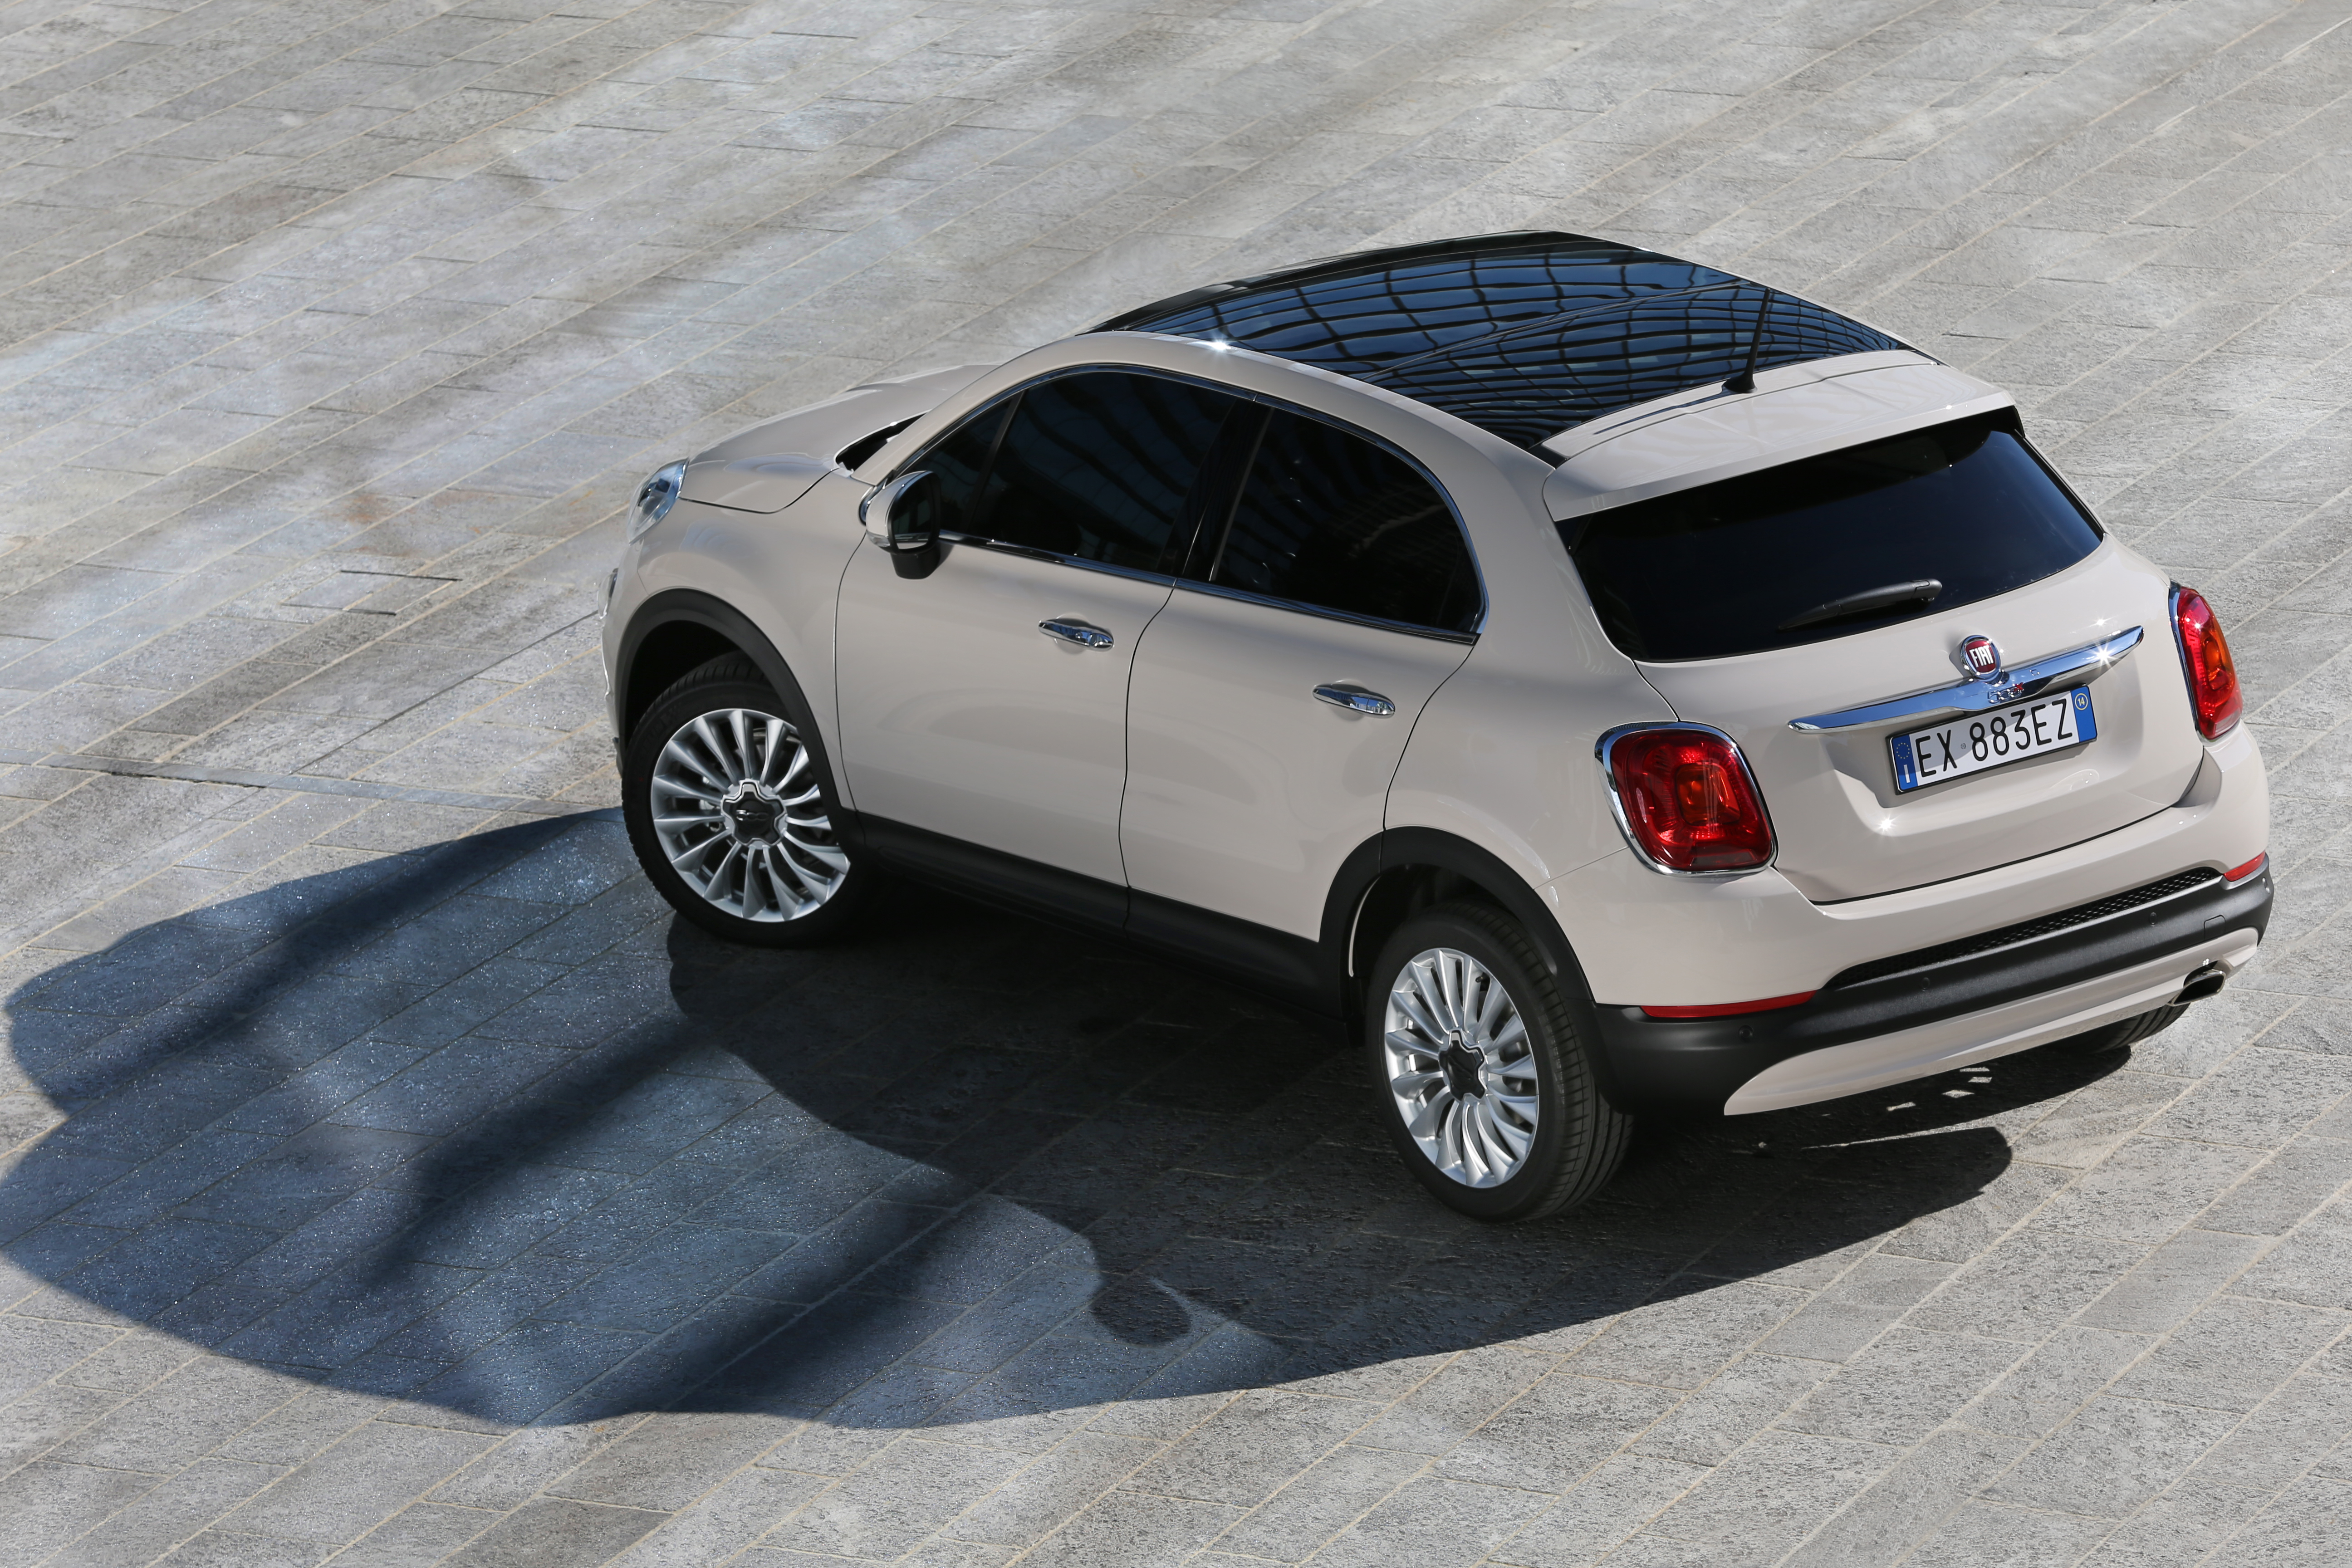 dossier de presse le nouveau crossover fiat 500x. Black Bedroom Furniture Sets. Home Design Ideas